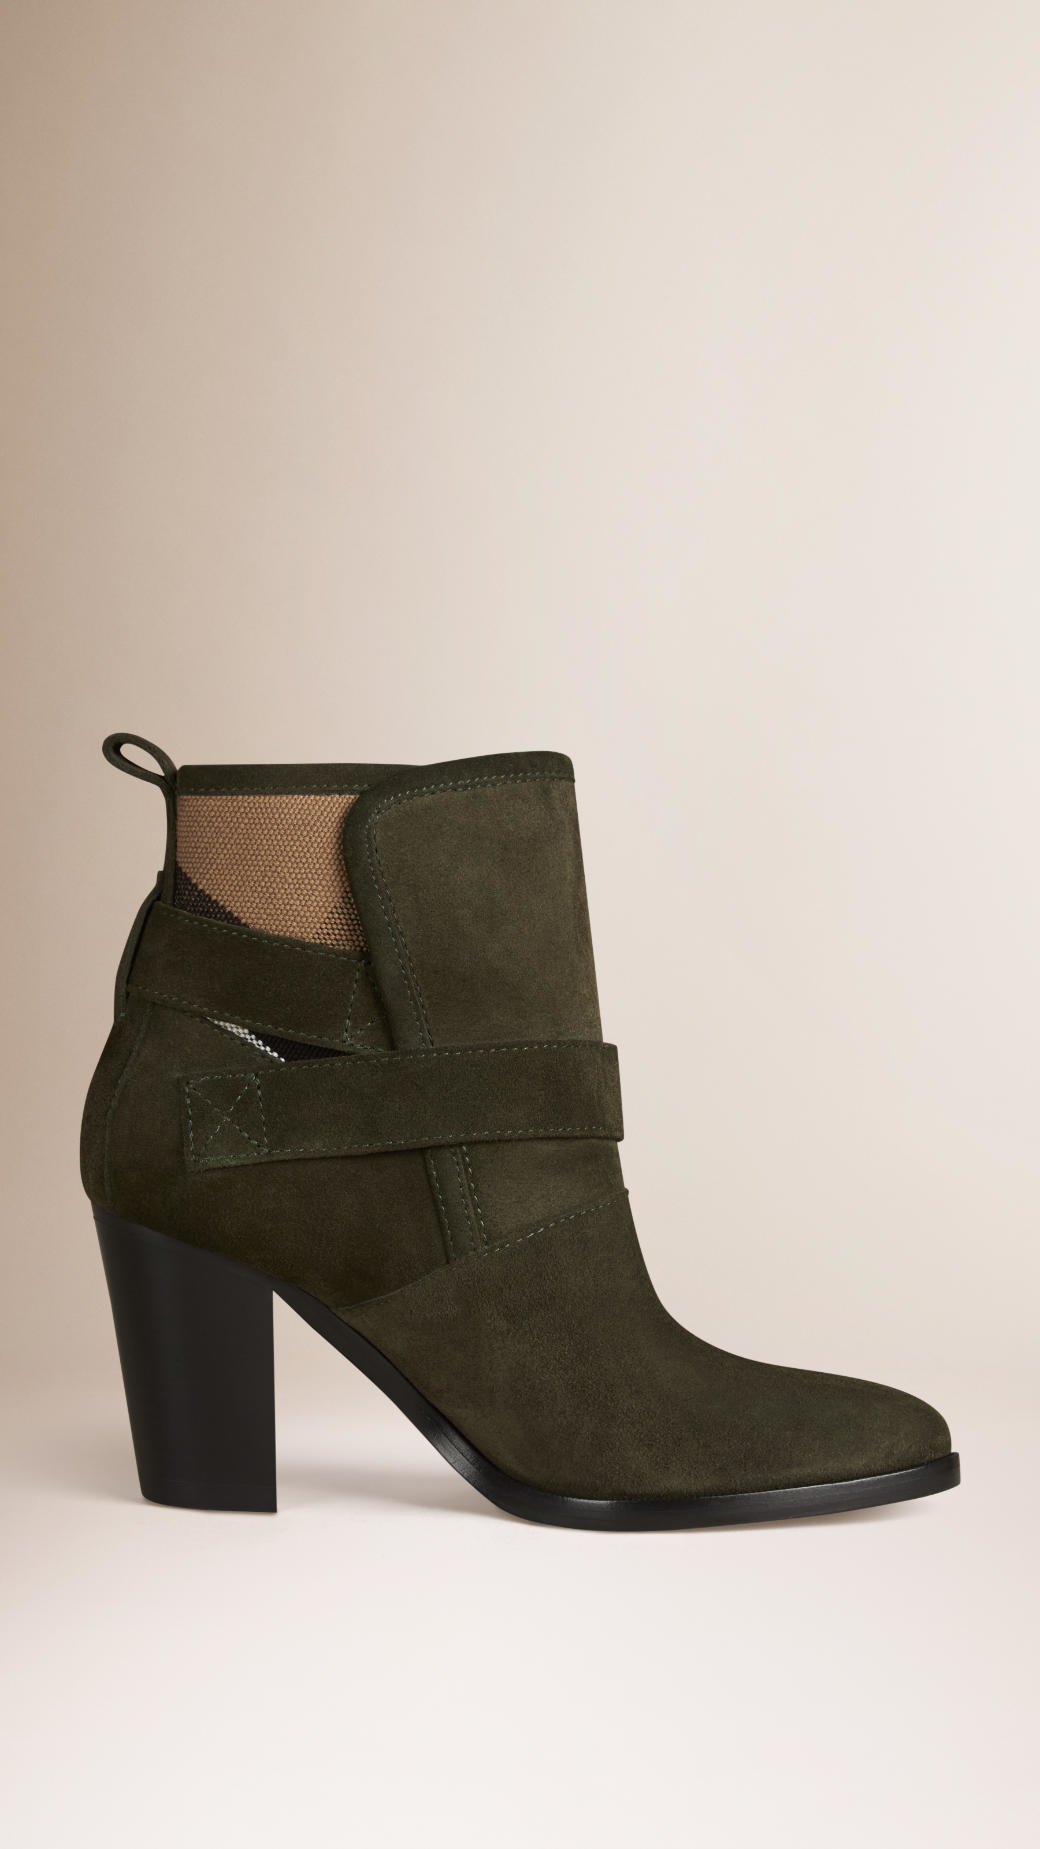 Burberry Suede Ankle Boots extremely sale online EFsz9OLsJ